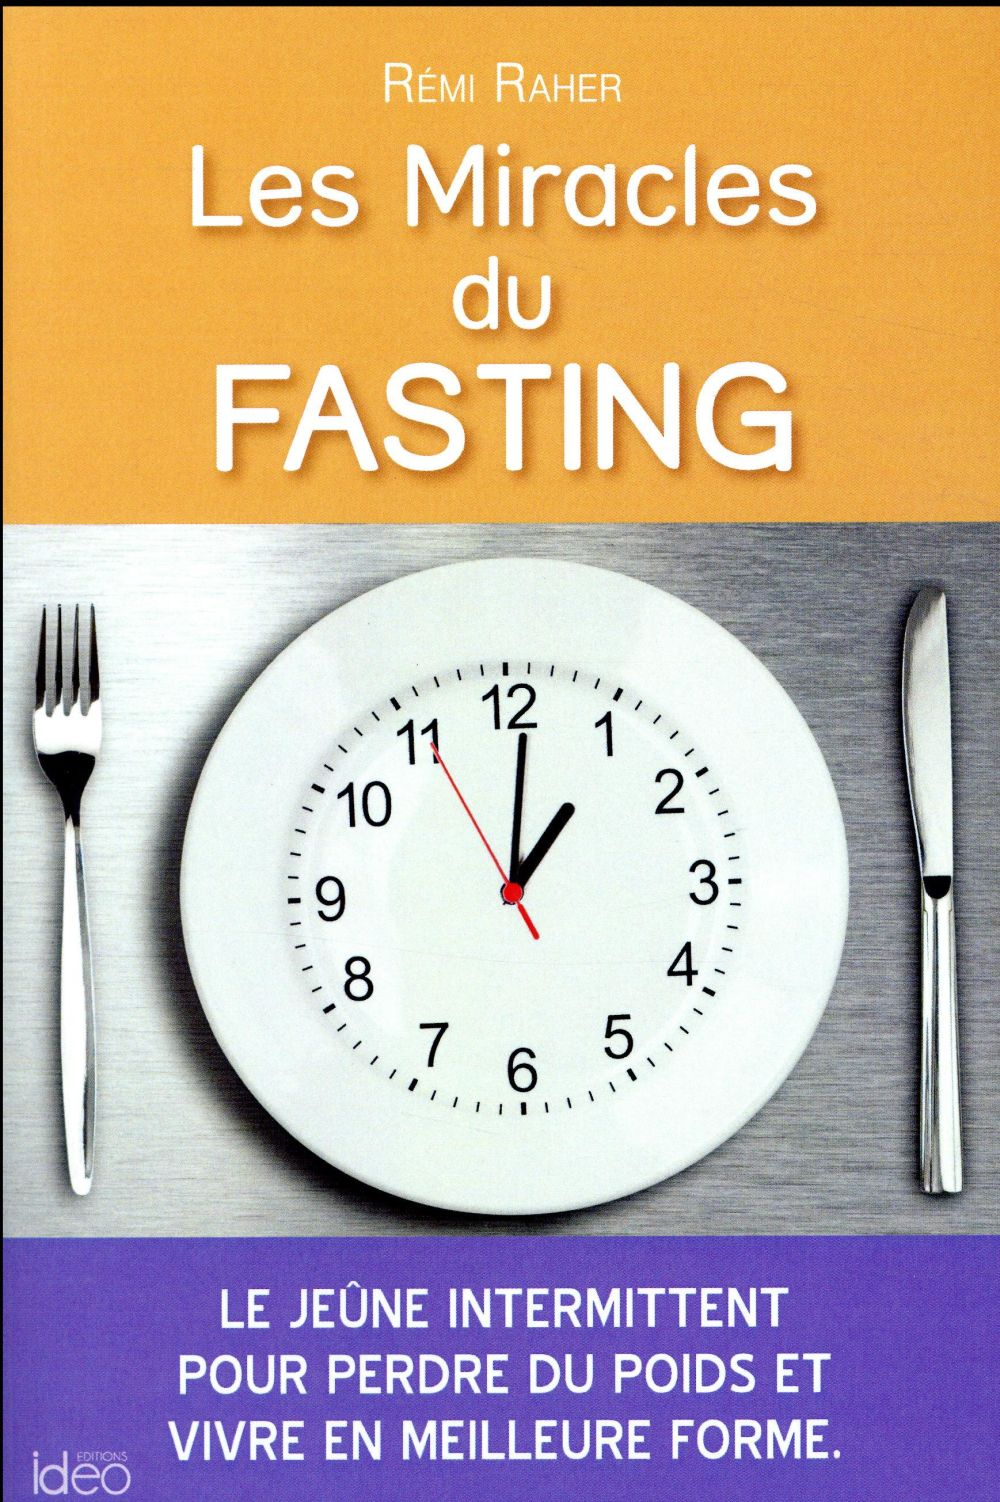 Les miracles du fasting